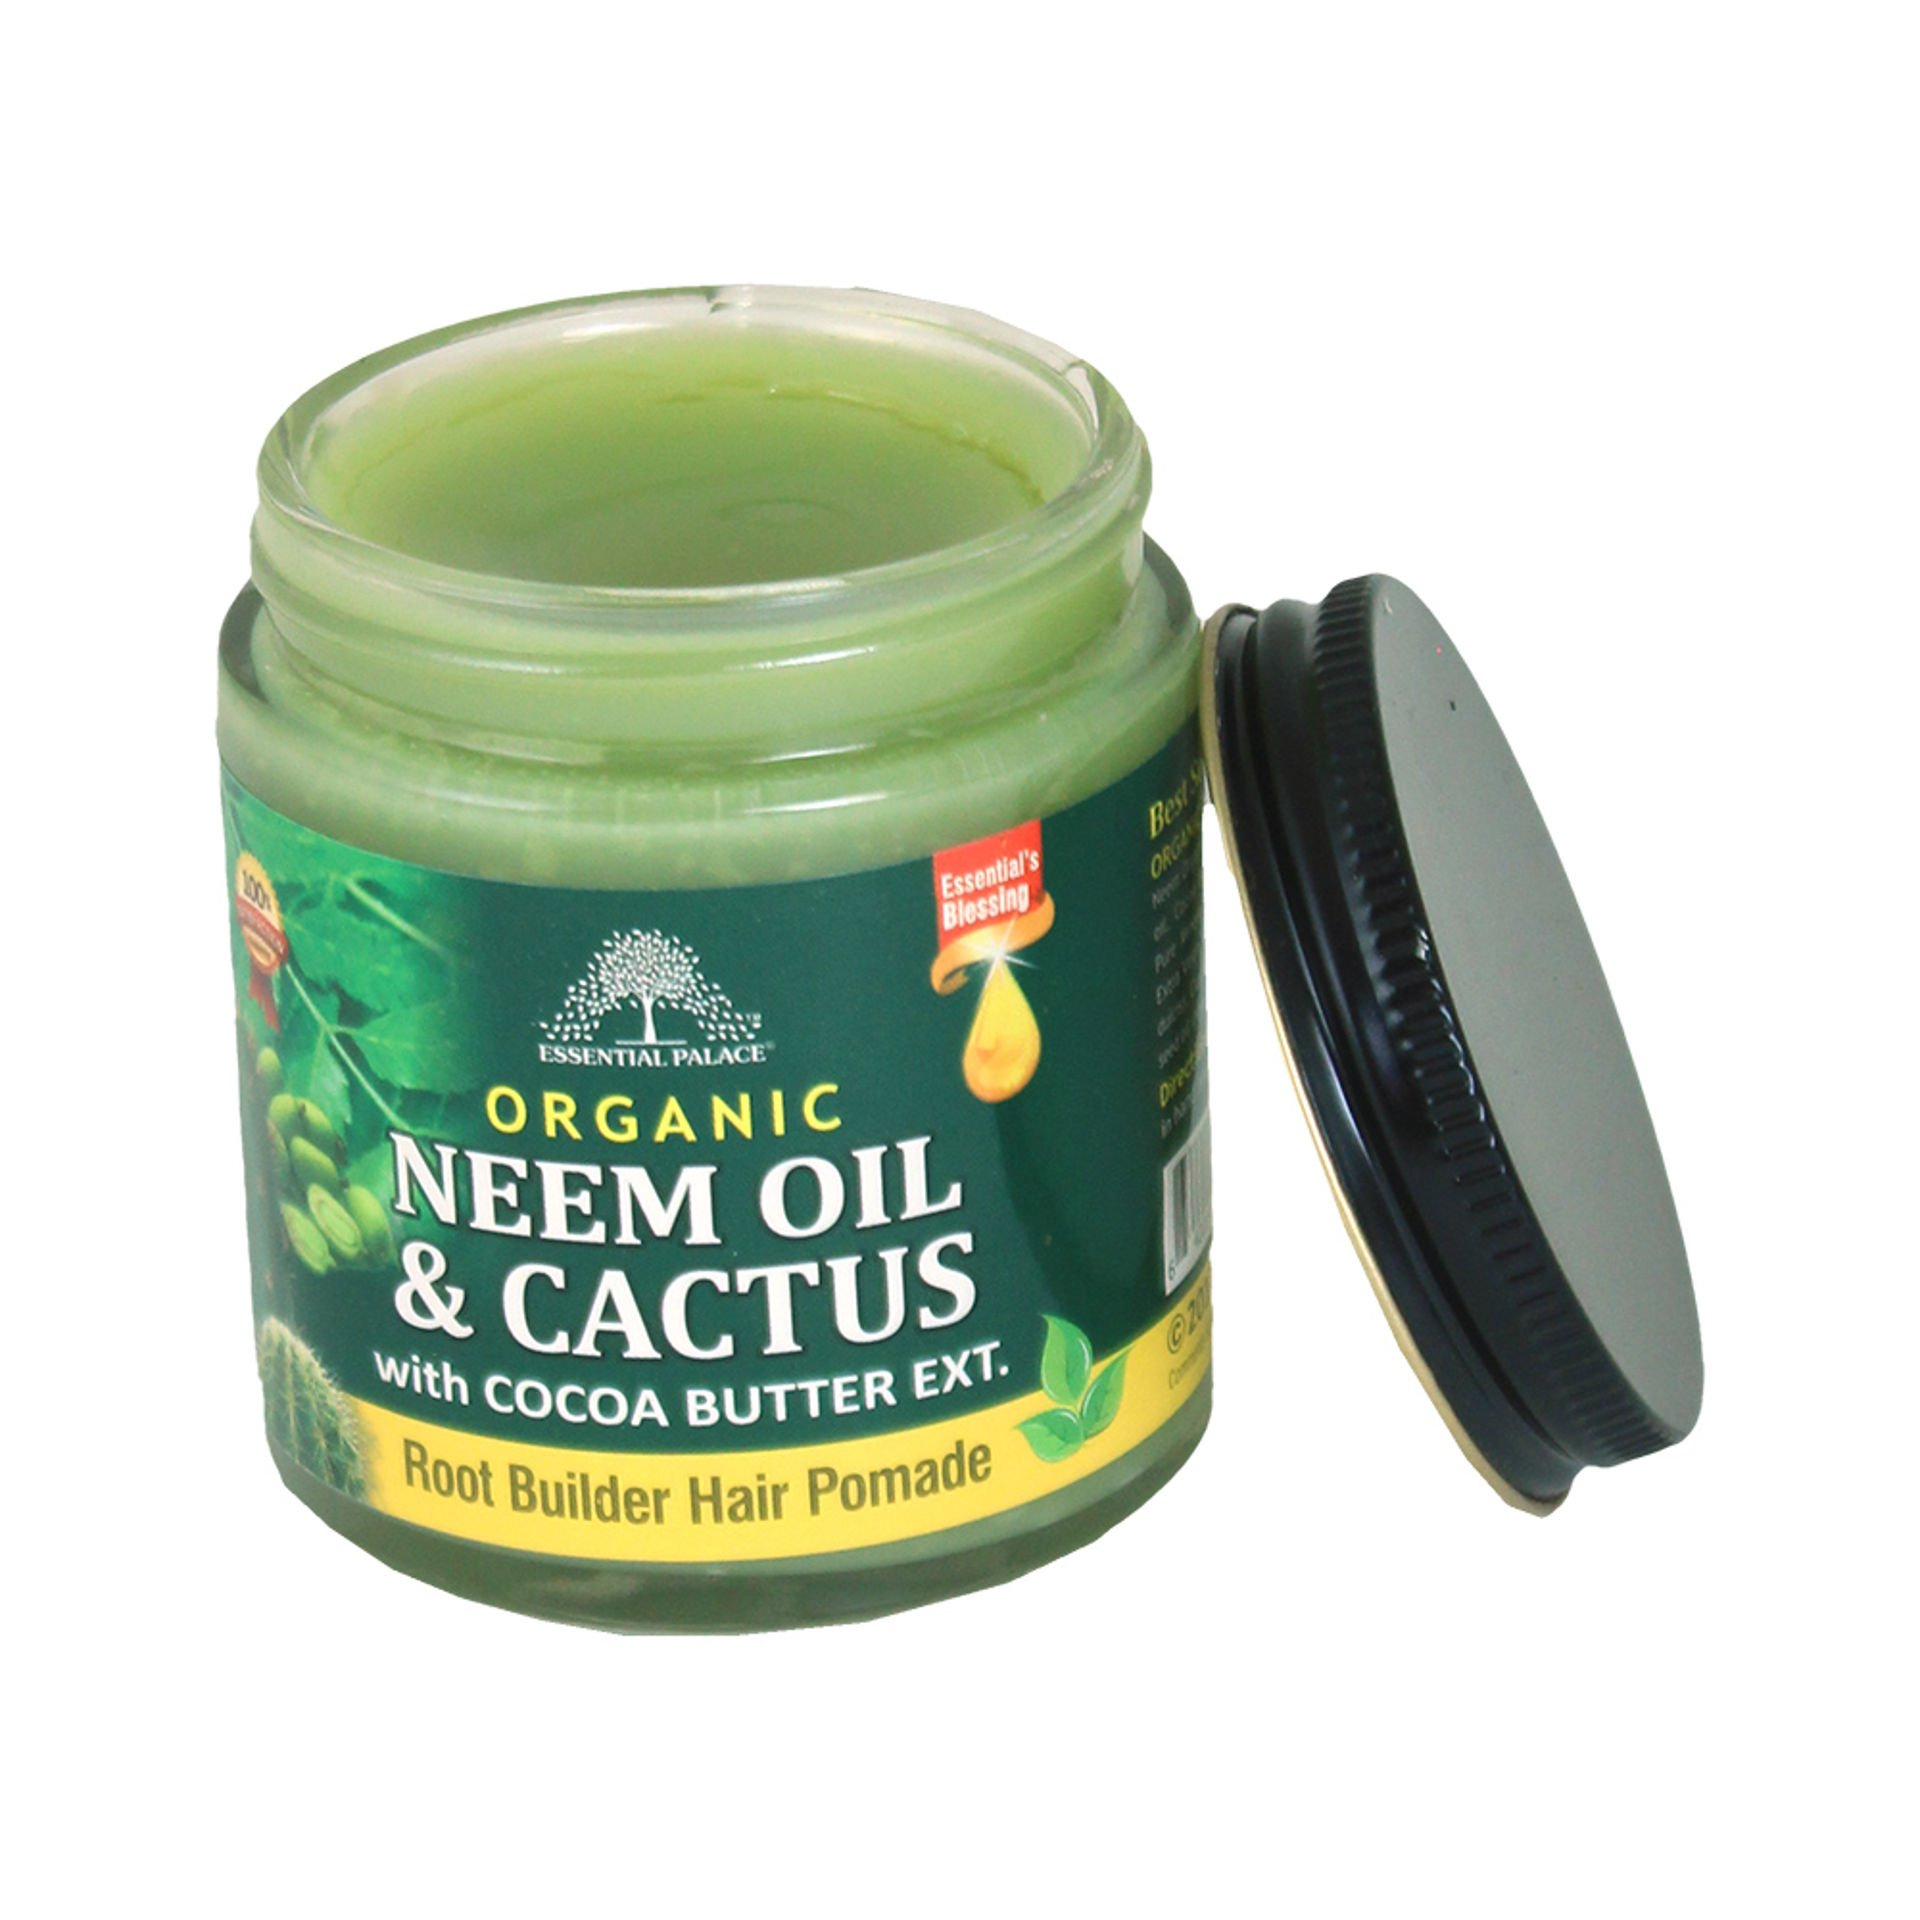 Picture of Organic Neem Oil & Cactus Hair Pomade